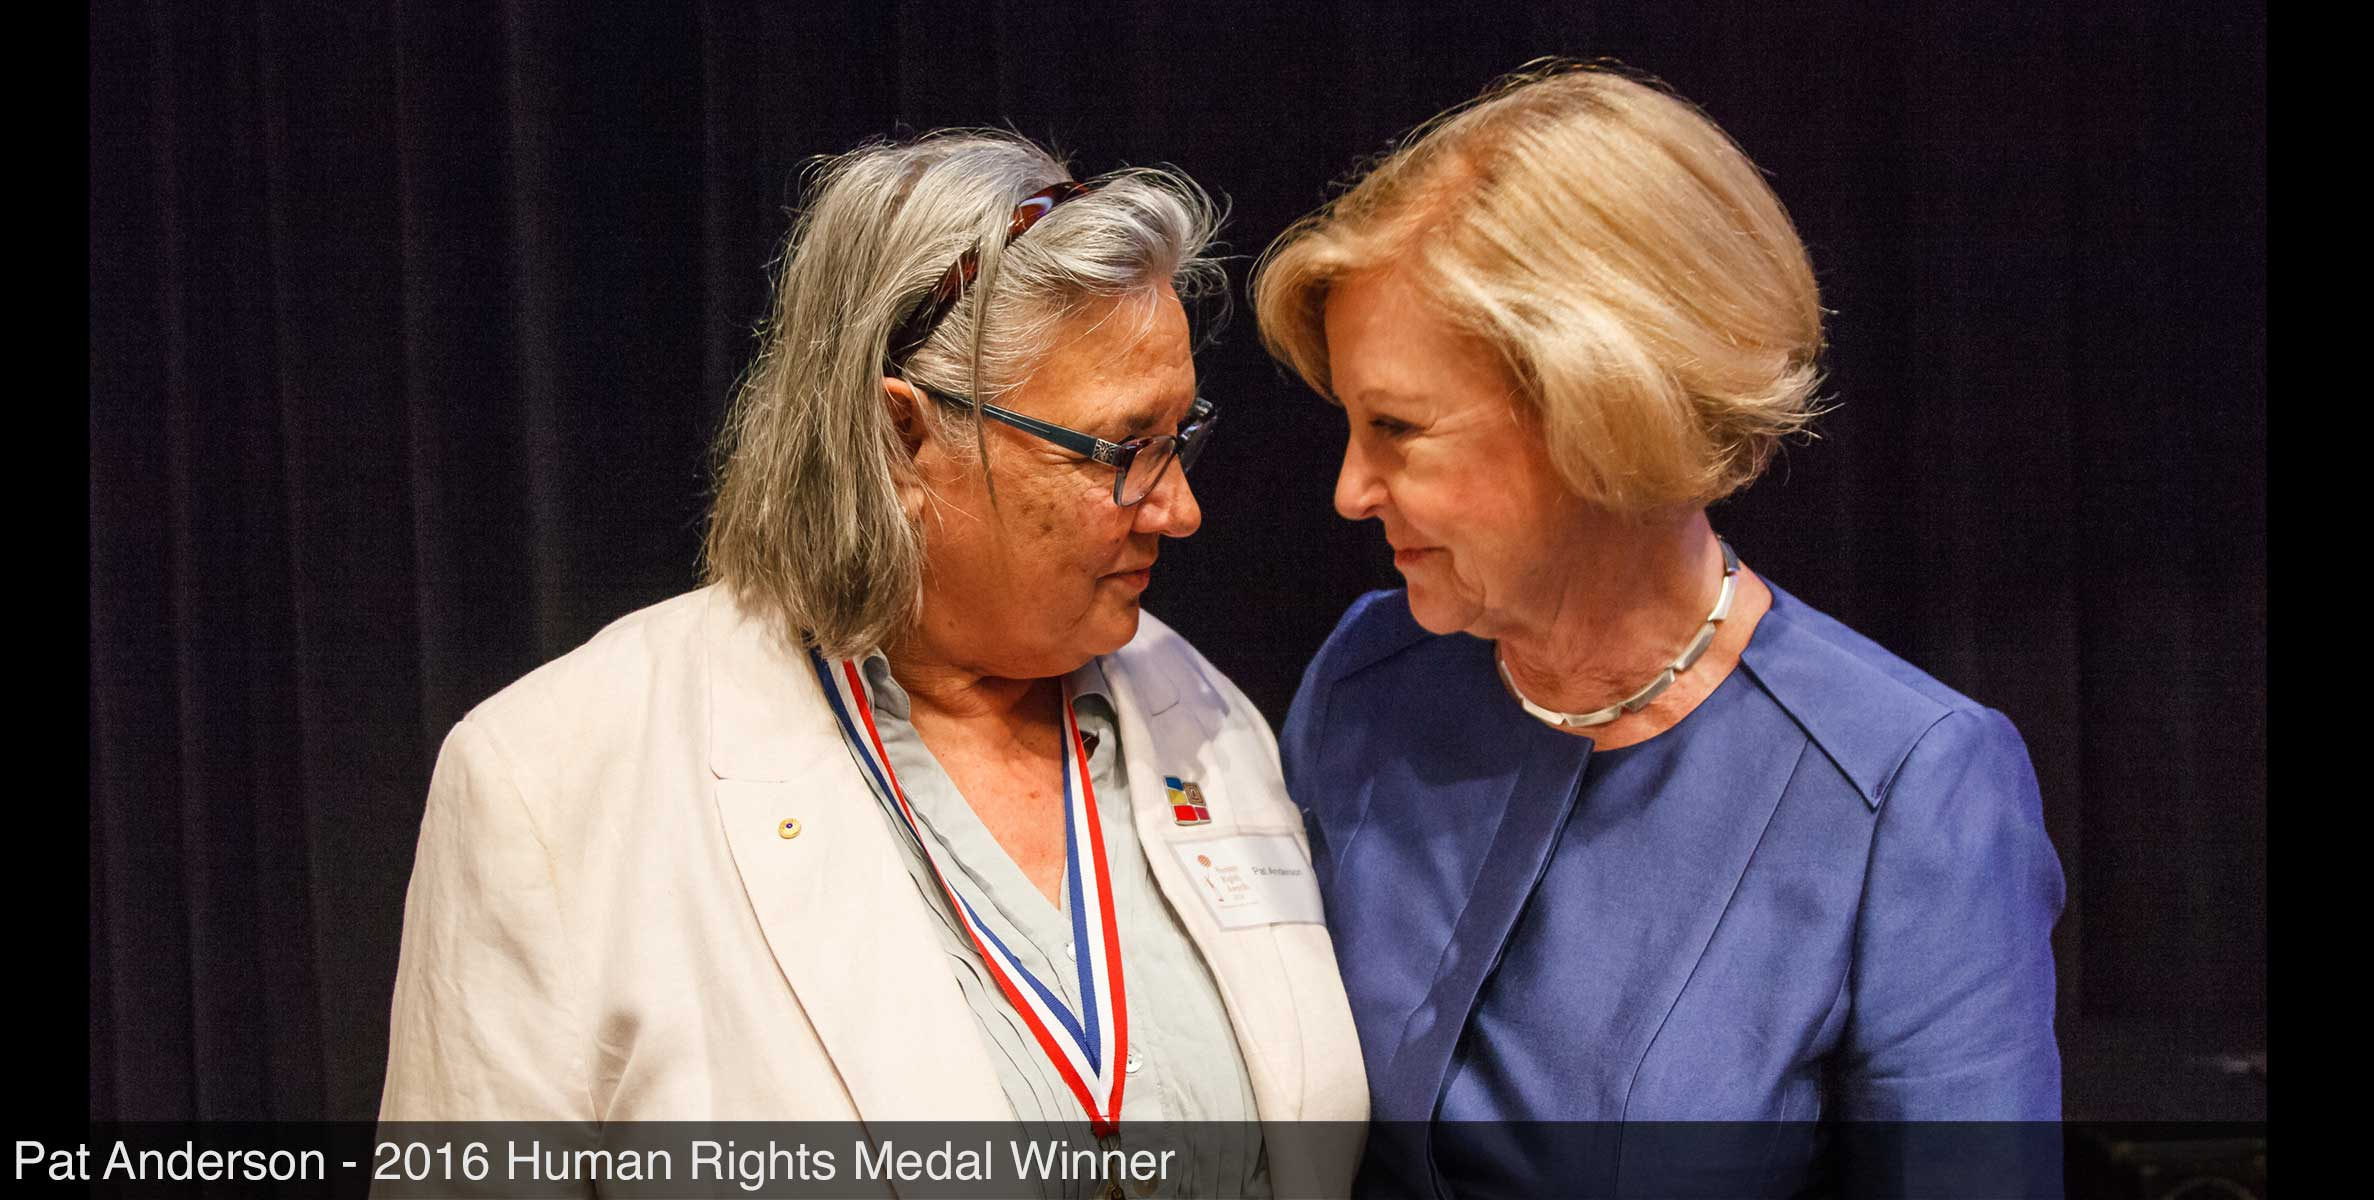 Pat Anderson and Gillian Triggs